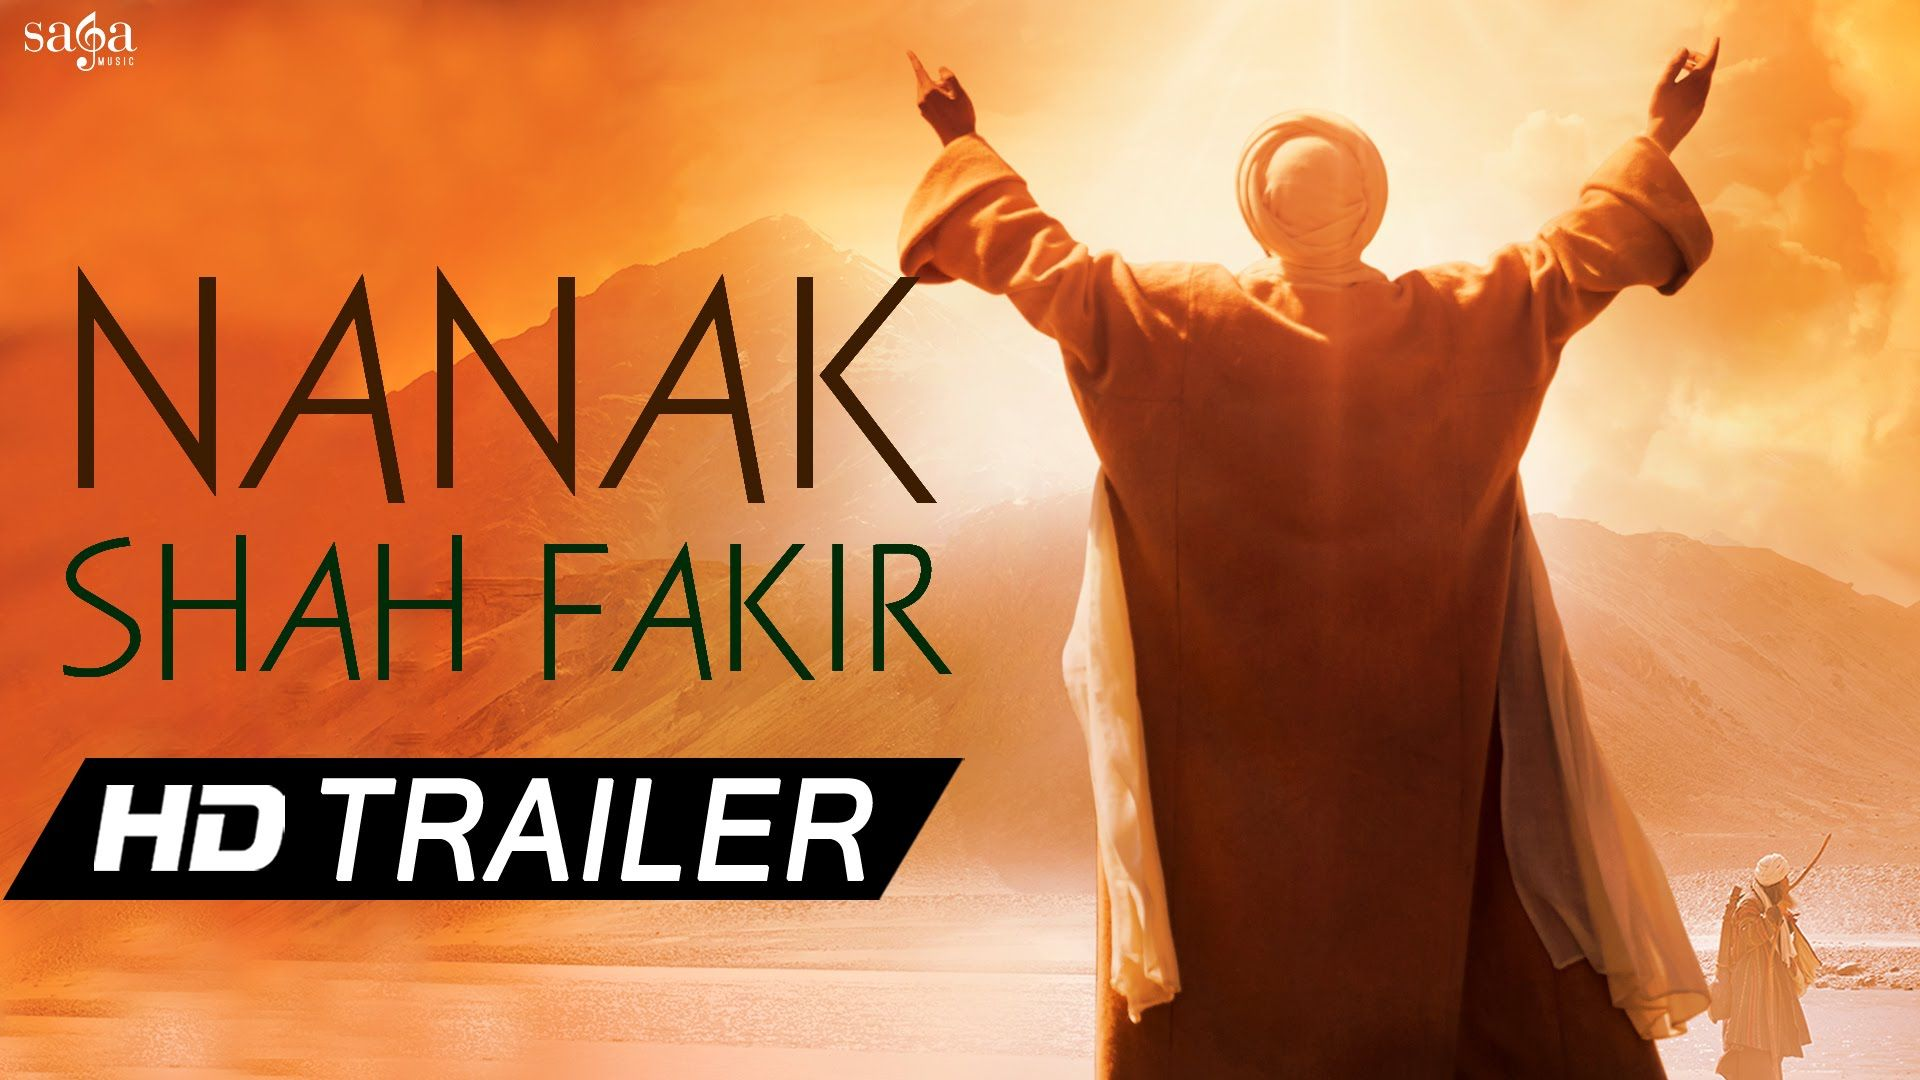 Nanak Shah Fakir Full Movie Download 720p Movies The